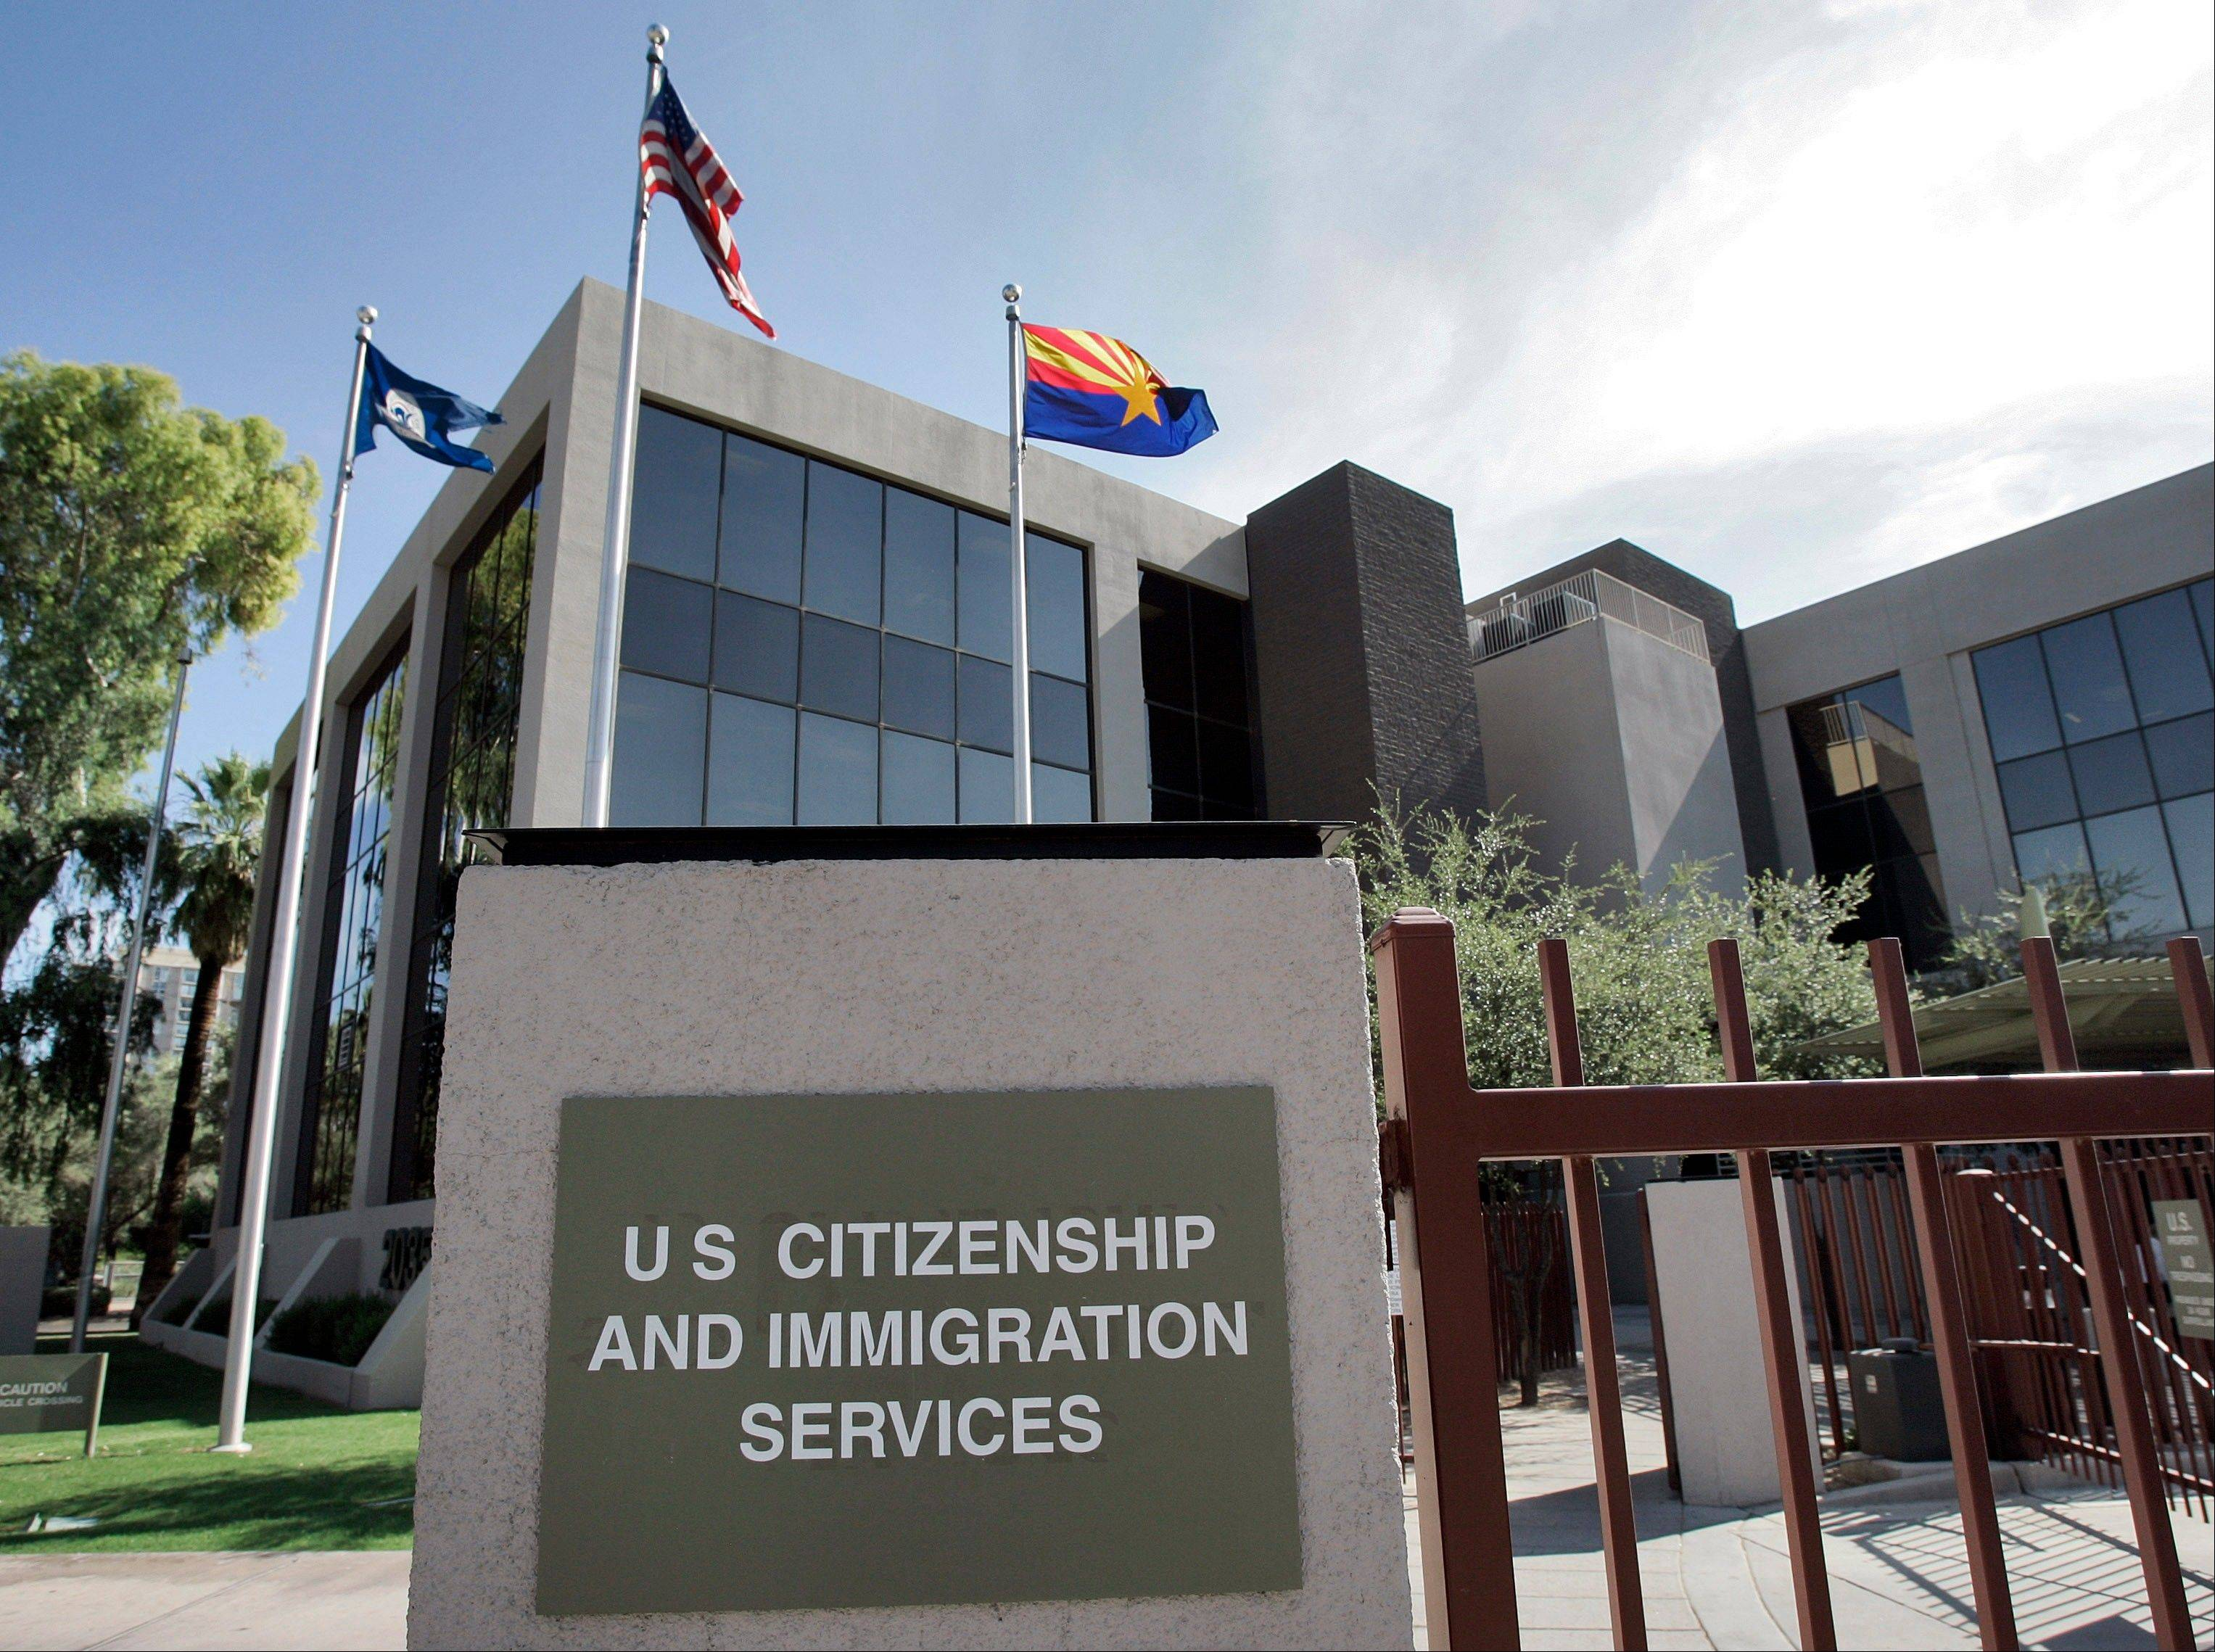 The U.S. Supreme Court will struggle this week with the validity of an Arizona law that tries to keep illegal immigrants from voting by demanding all state residents show documents proving their U.S. citizenship before registering to vote in national elections.